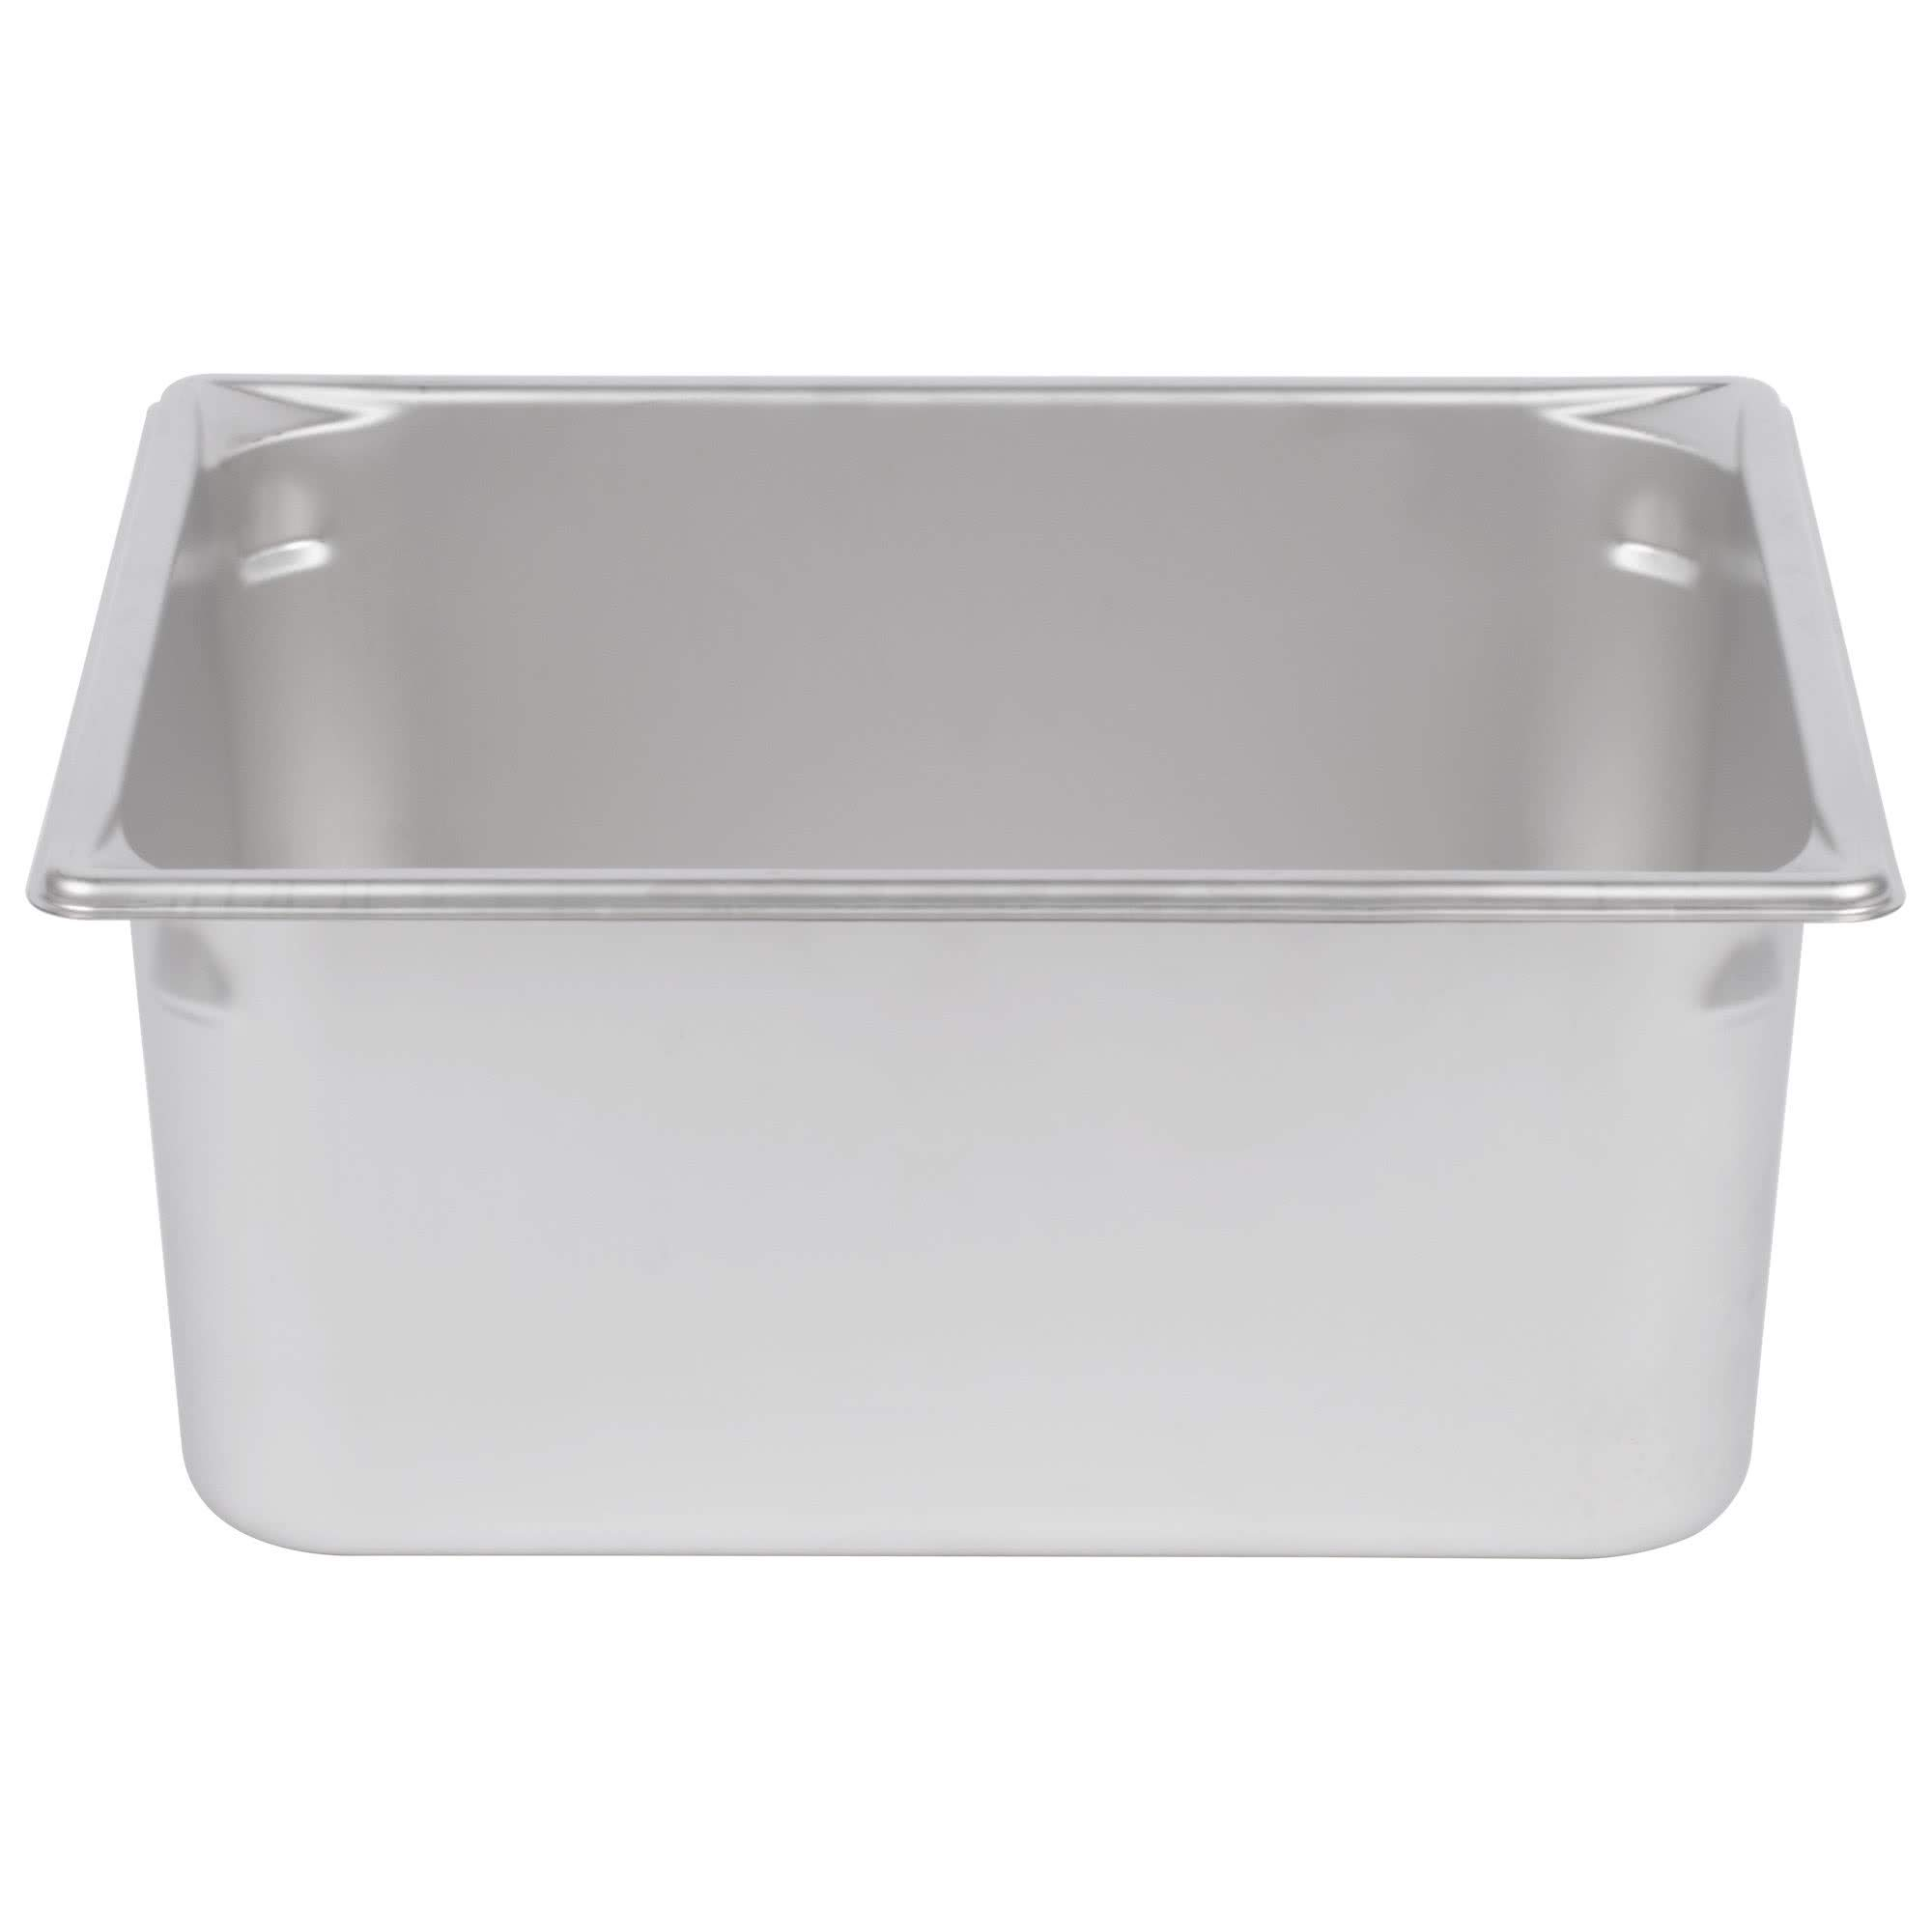 TableTop King 30162 Super Pan V 2/3 Size Anti-Jam Stainless Steel Steam Table/Hotel Pan - 6'' Deep by TableTop King